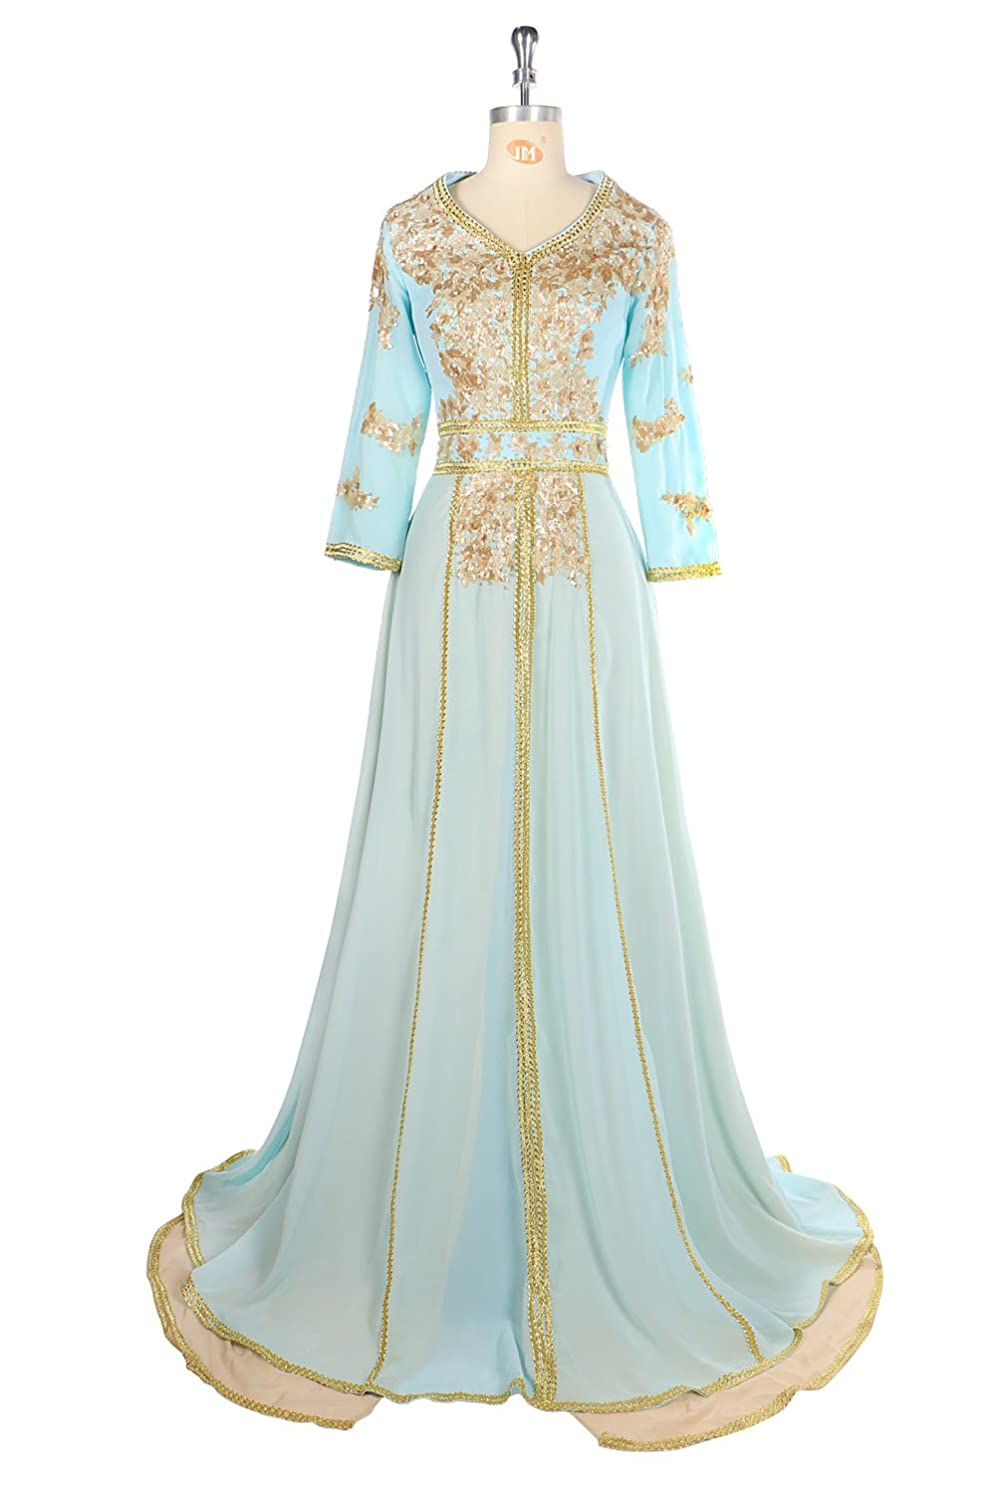 Oyeahbridal Muslim Arabic Dubai Evening Dress with Sleeve Gold ...